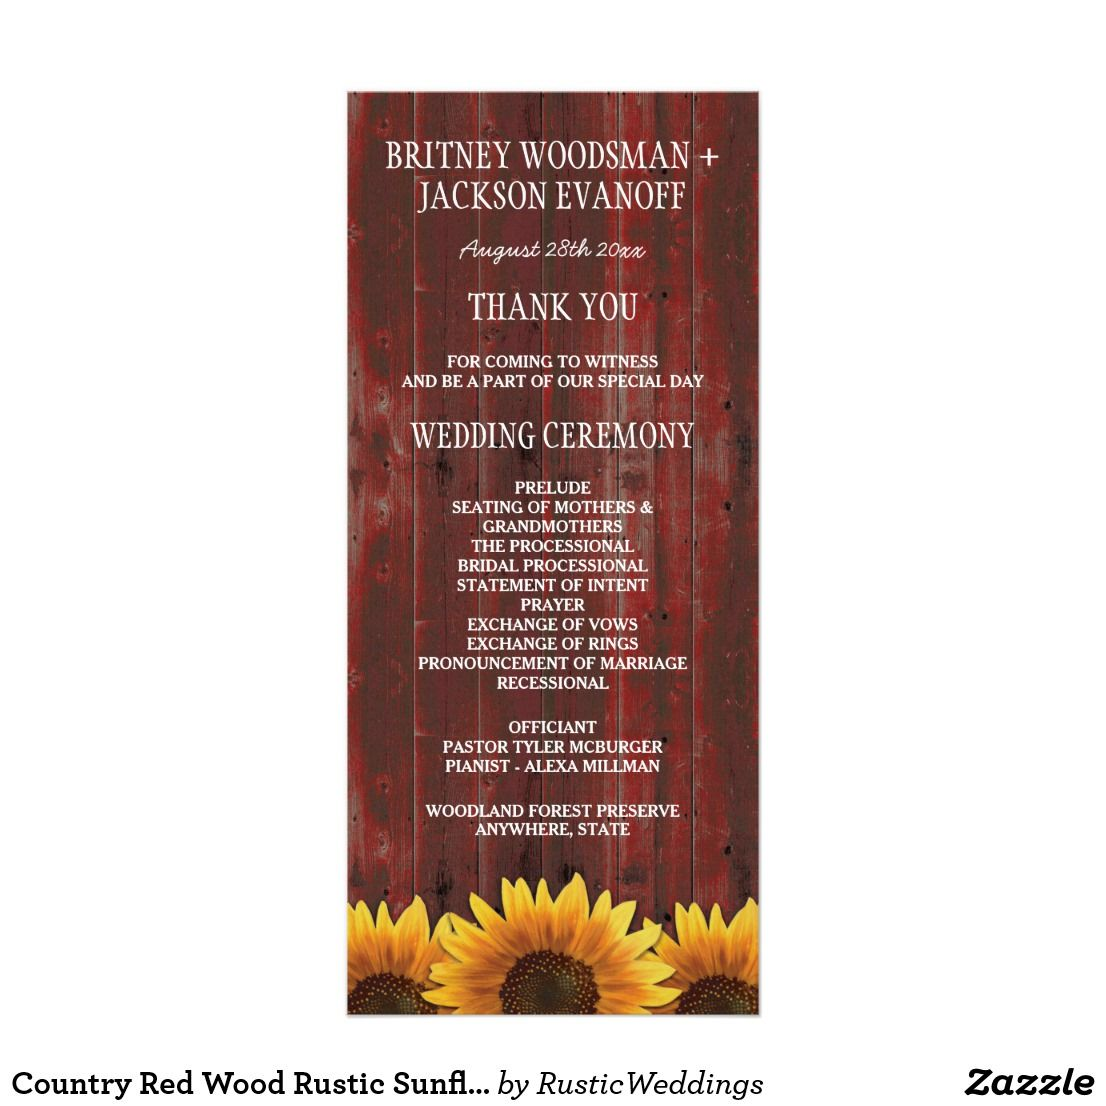 Country Red Wood Rustic Sunflower Wedding Programs | Rustic ...